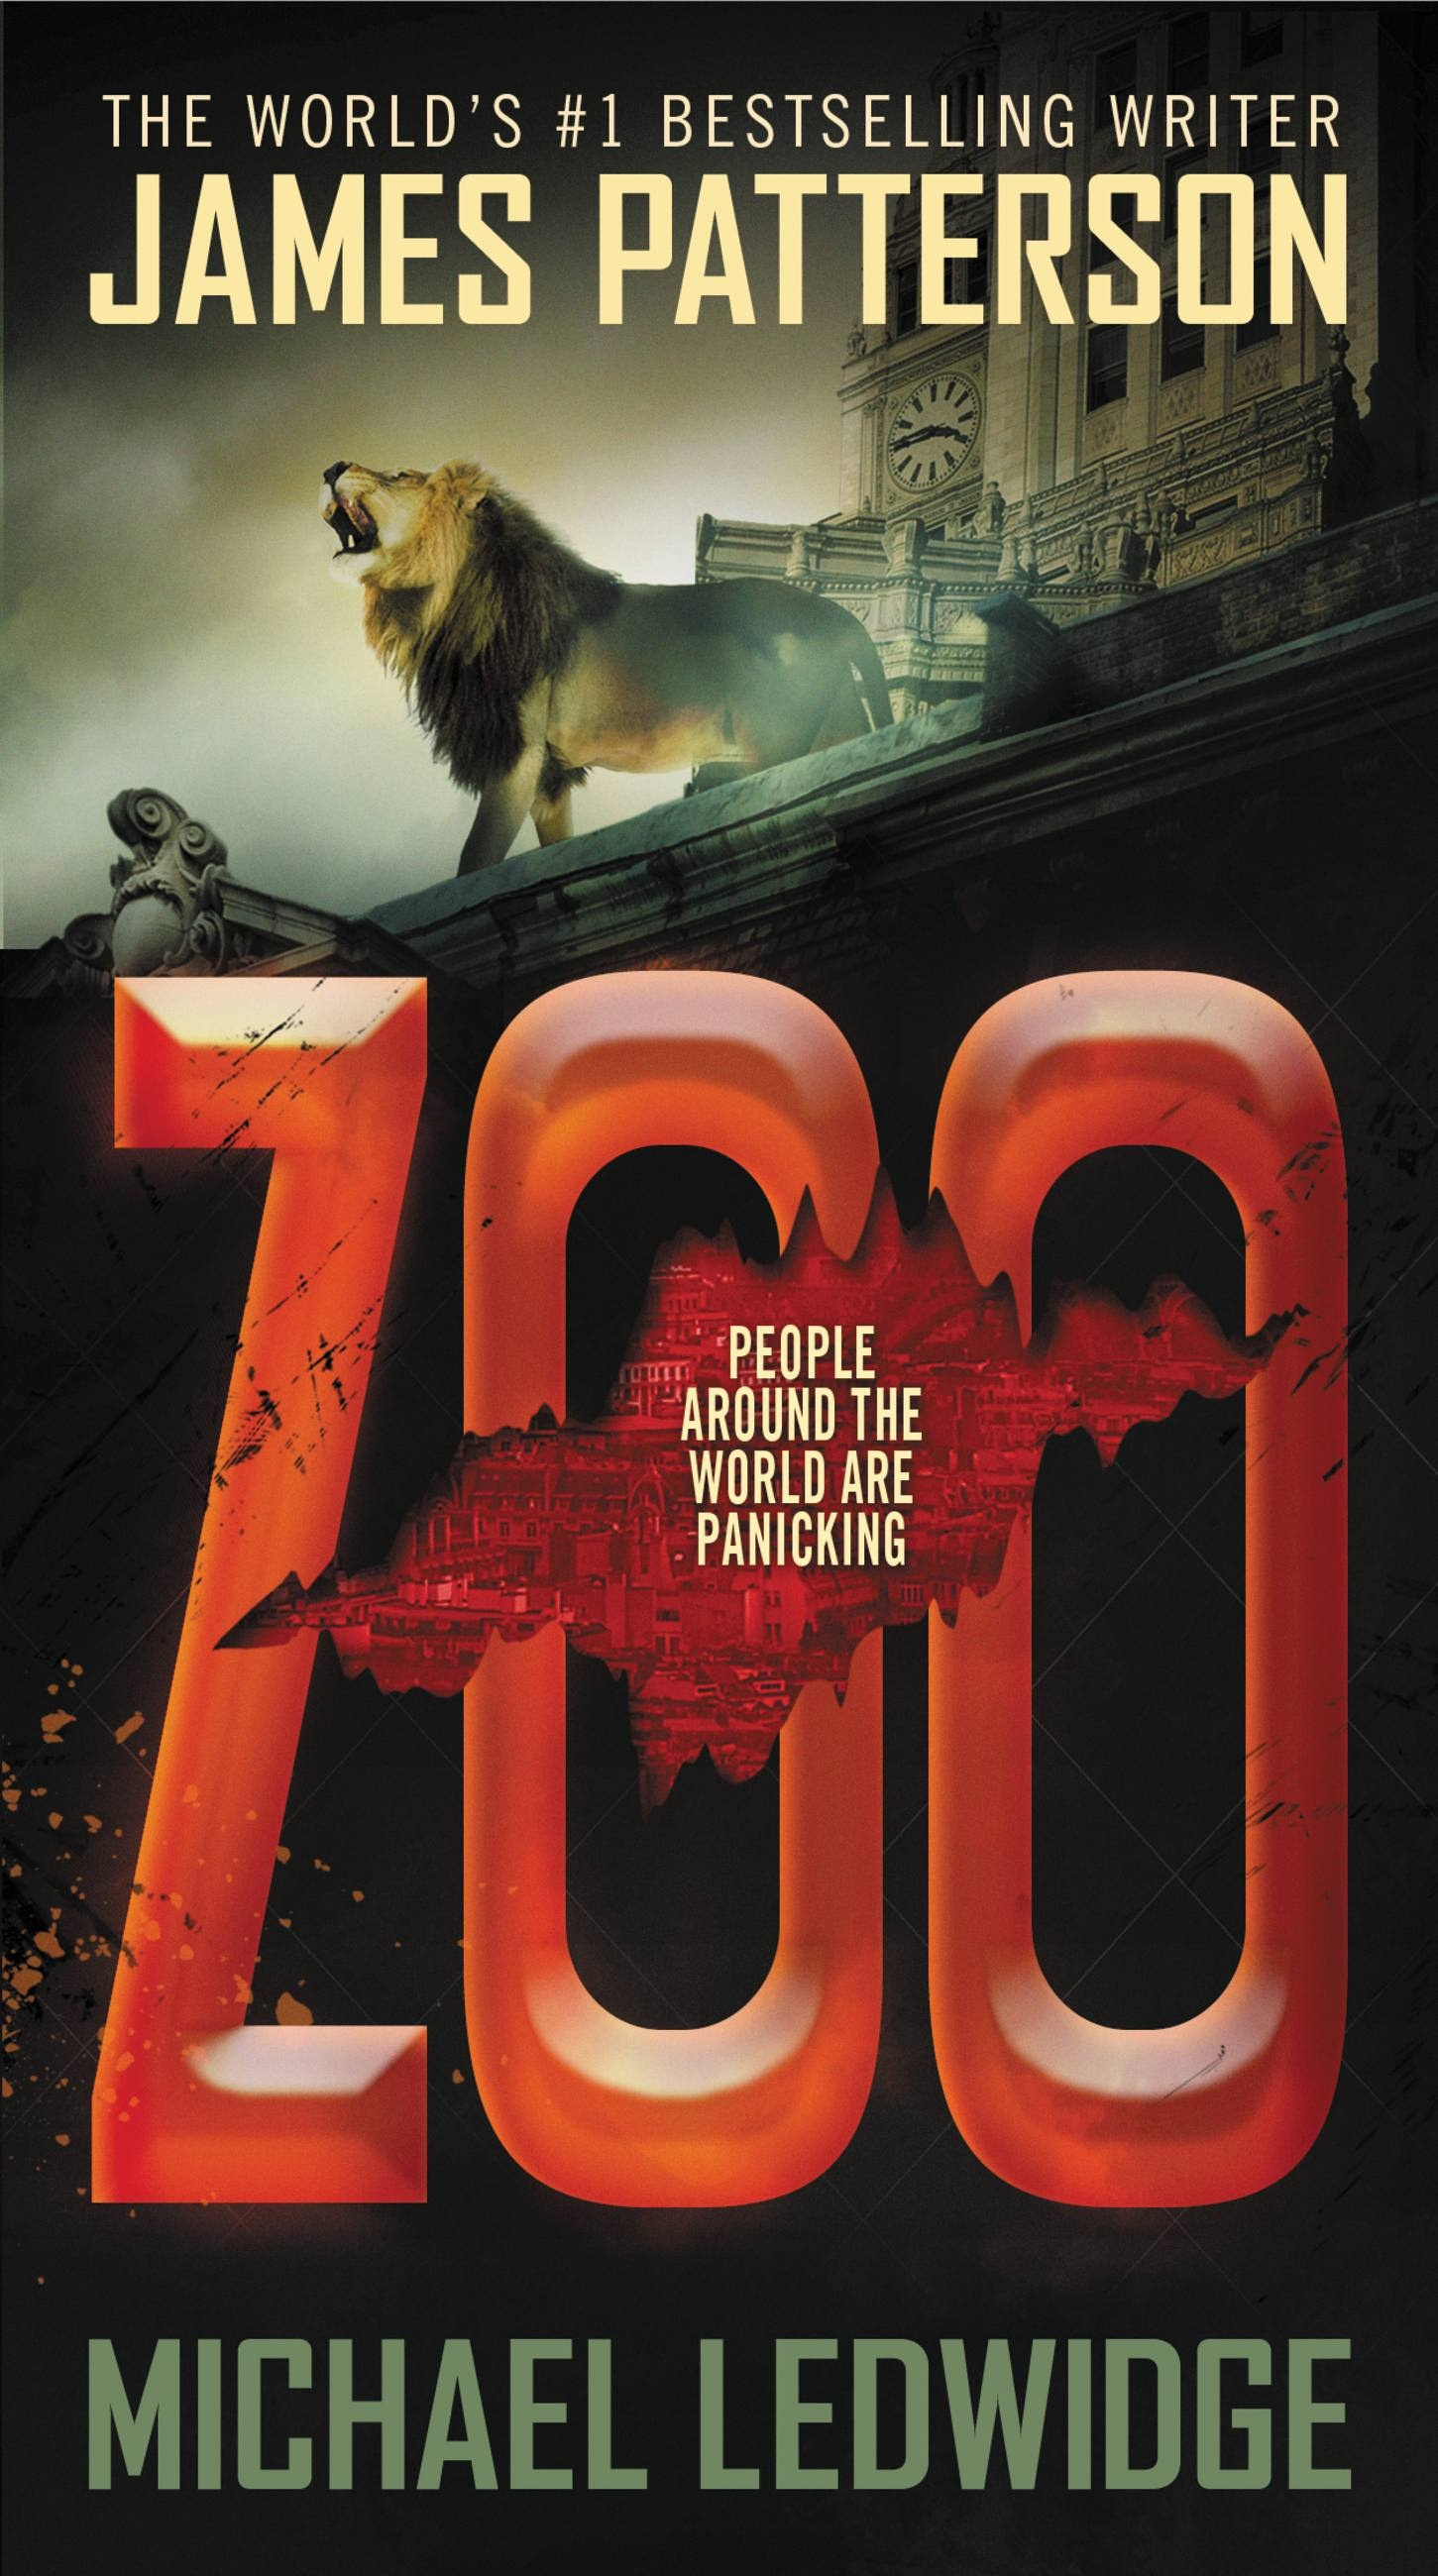 Zoo by James Patterson | Hachette Book Group